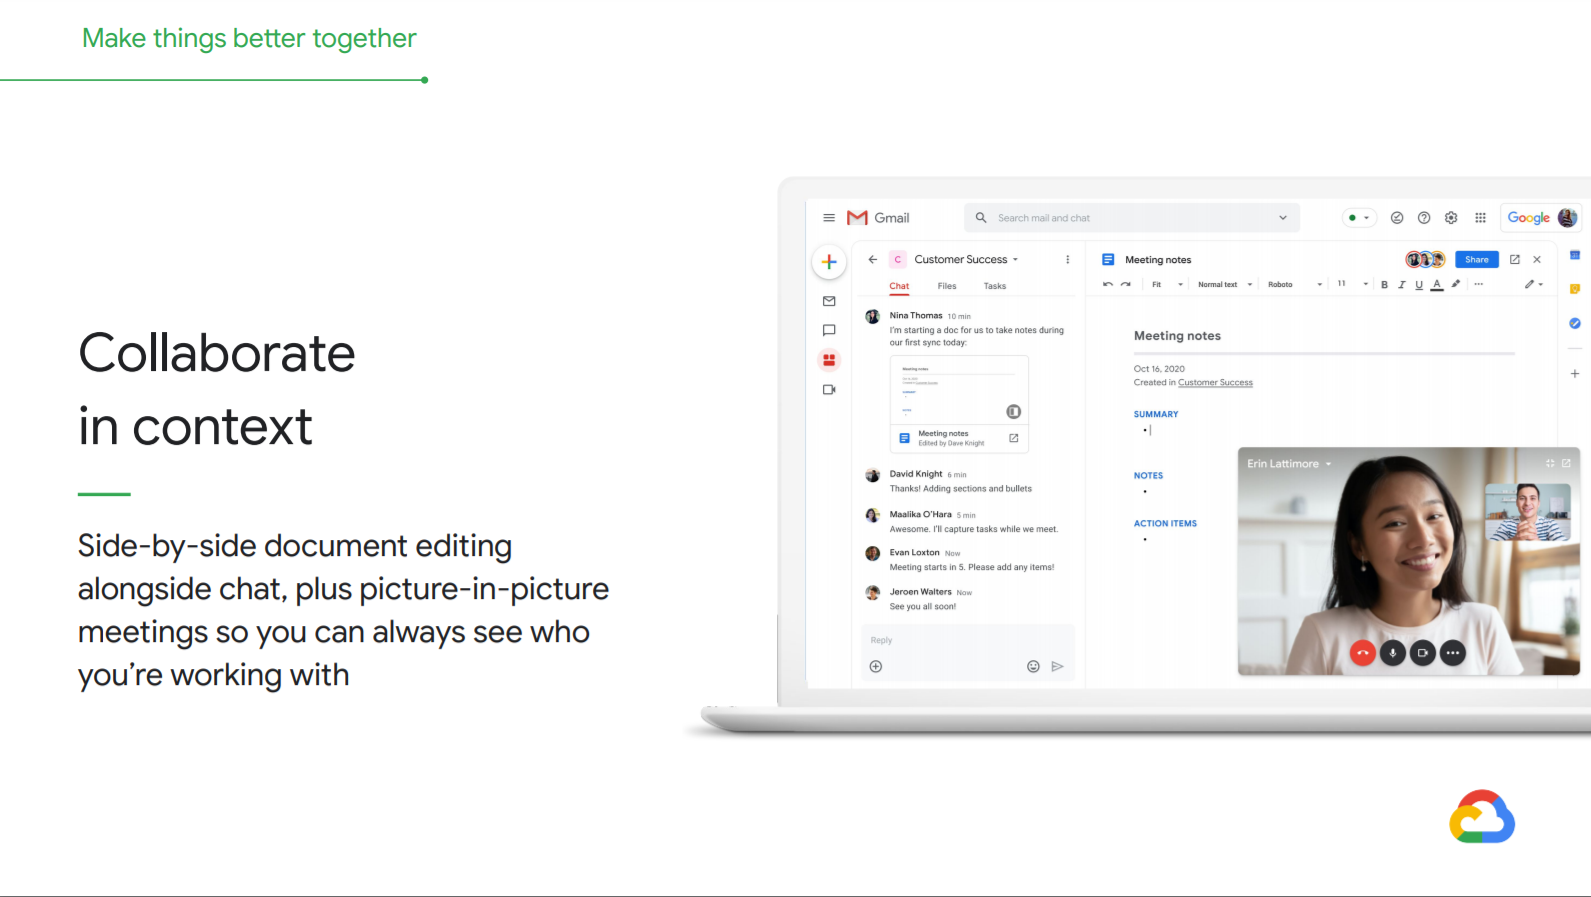 It's Official! Gmail is Getting a Huge Upgrade With Chat and Meet